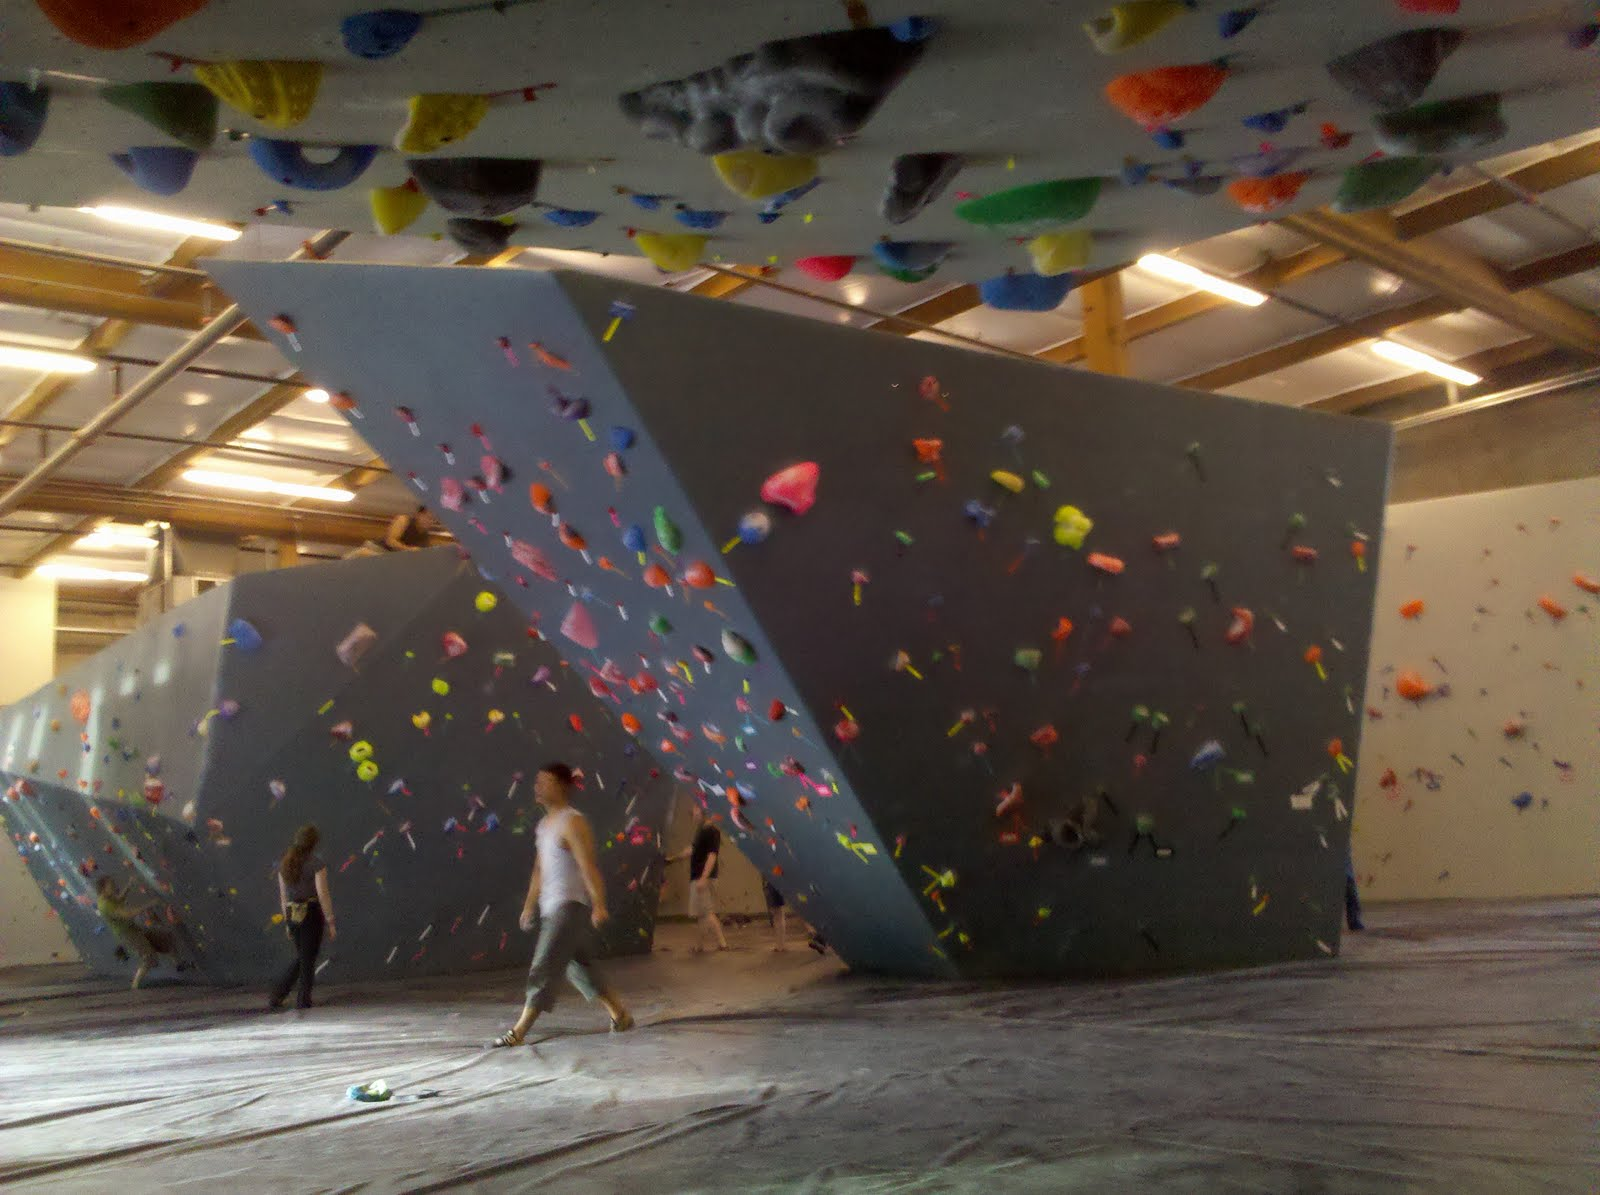 seattle bouldering project If you're looking for a way to hone your rock-climbing skills over the winter, make a point of checking out the seattle bouldering project in beacon hill.